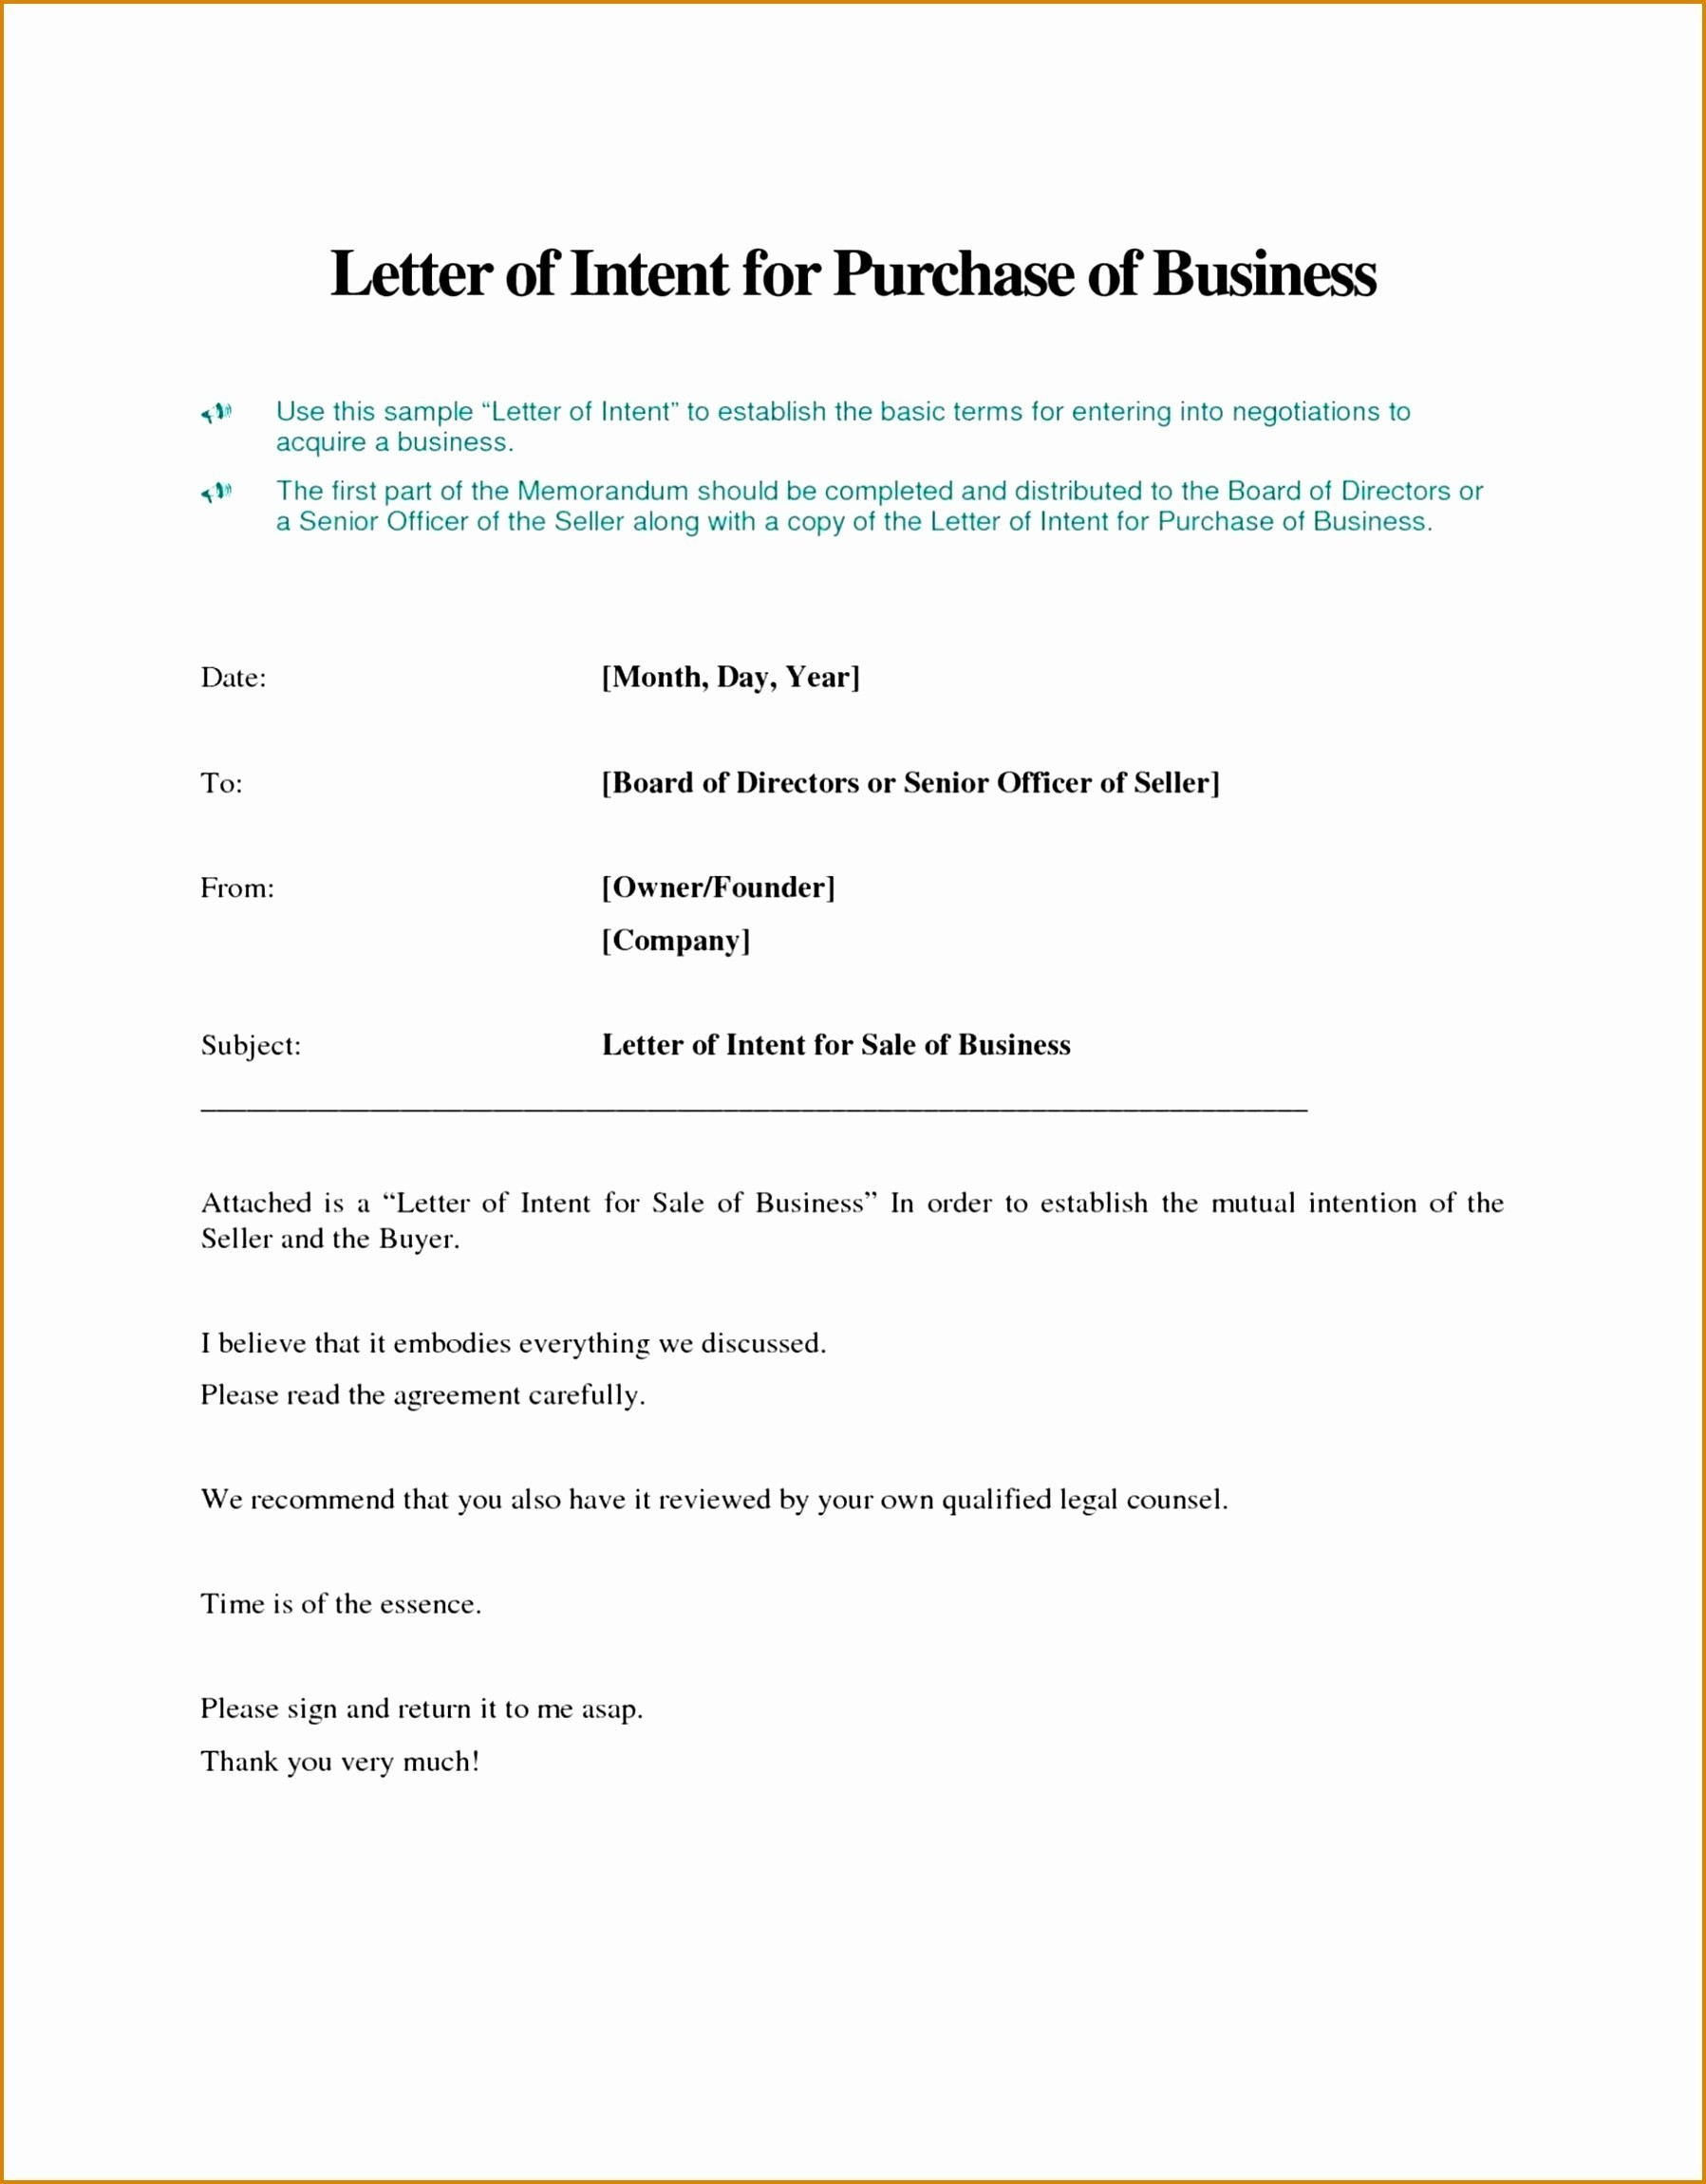 Letter Of Intent to Sell A Business Template - Letter Intent to Do Business Template Best Awesome Letter Intent